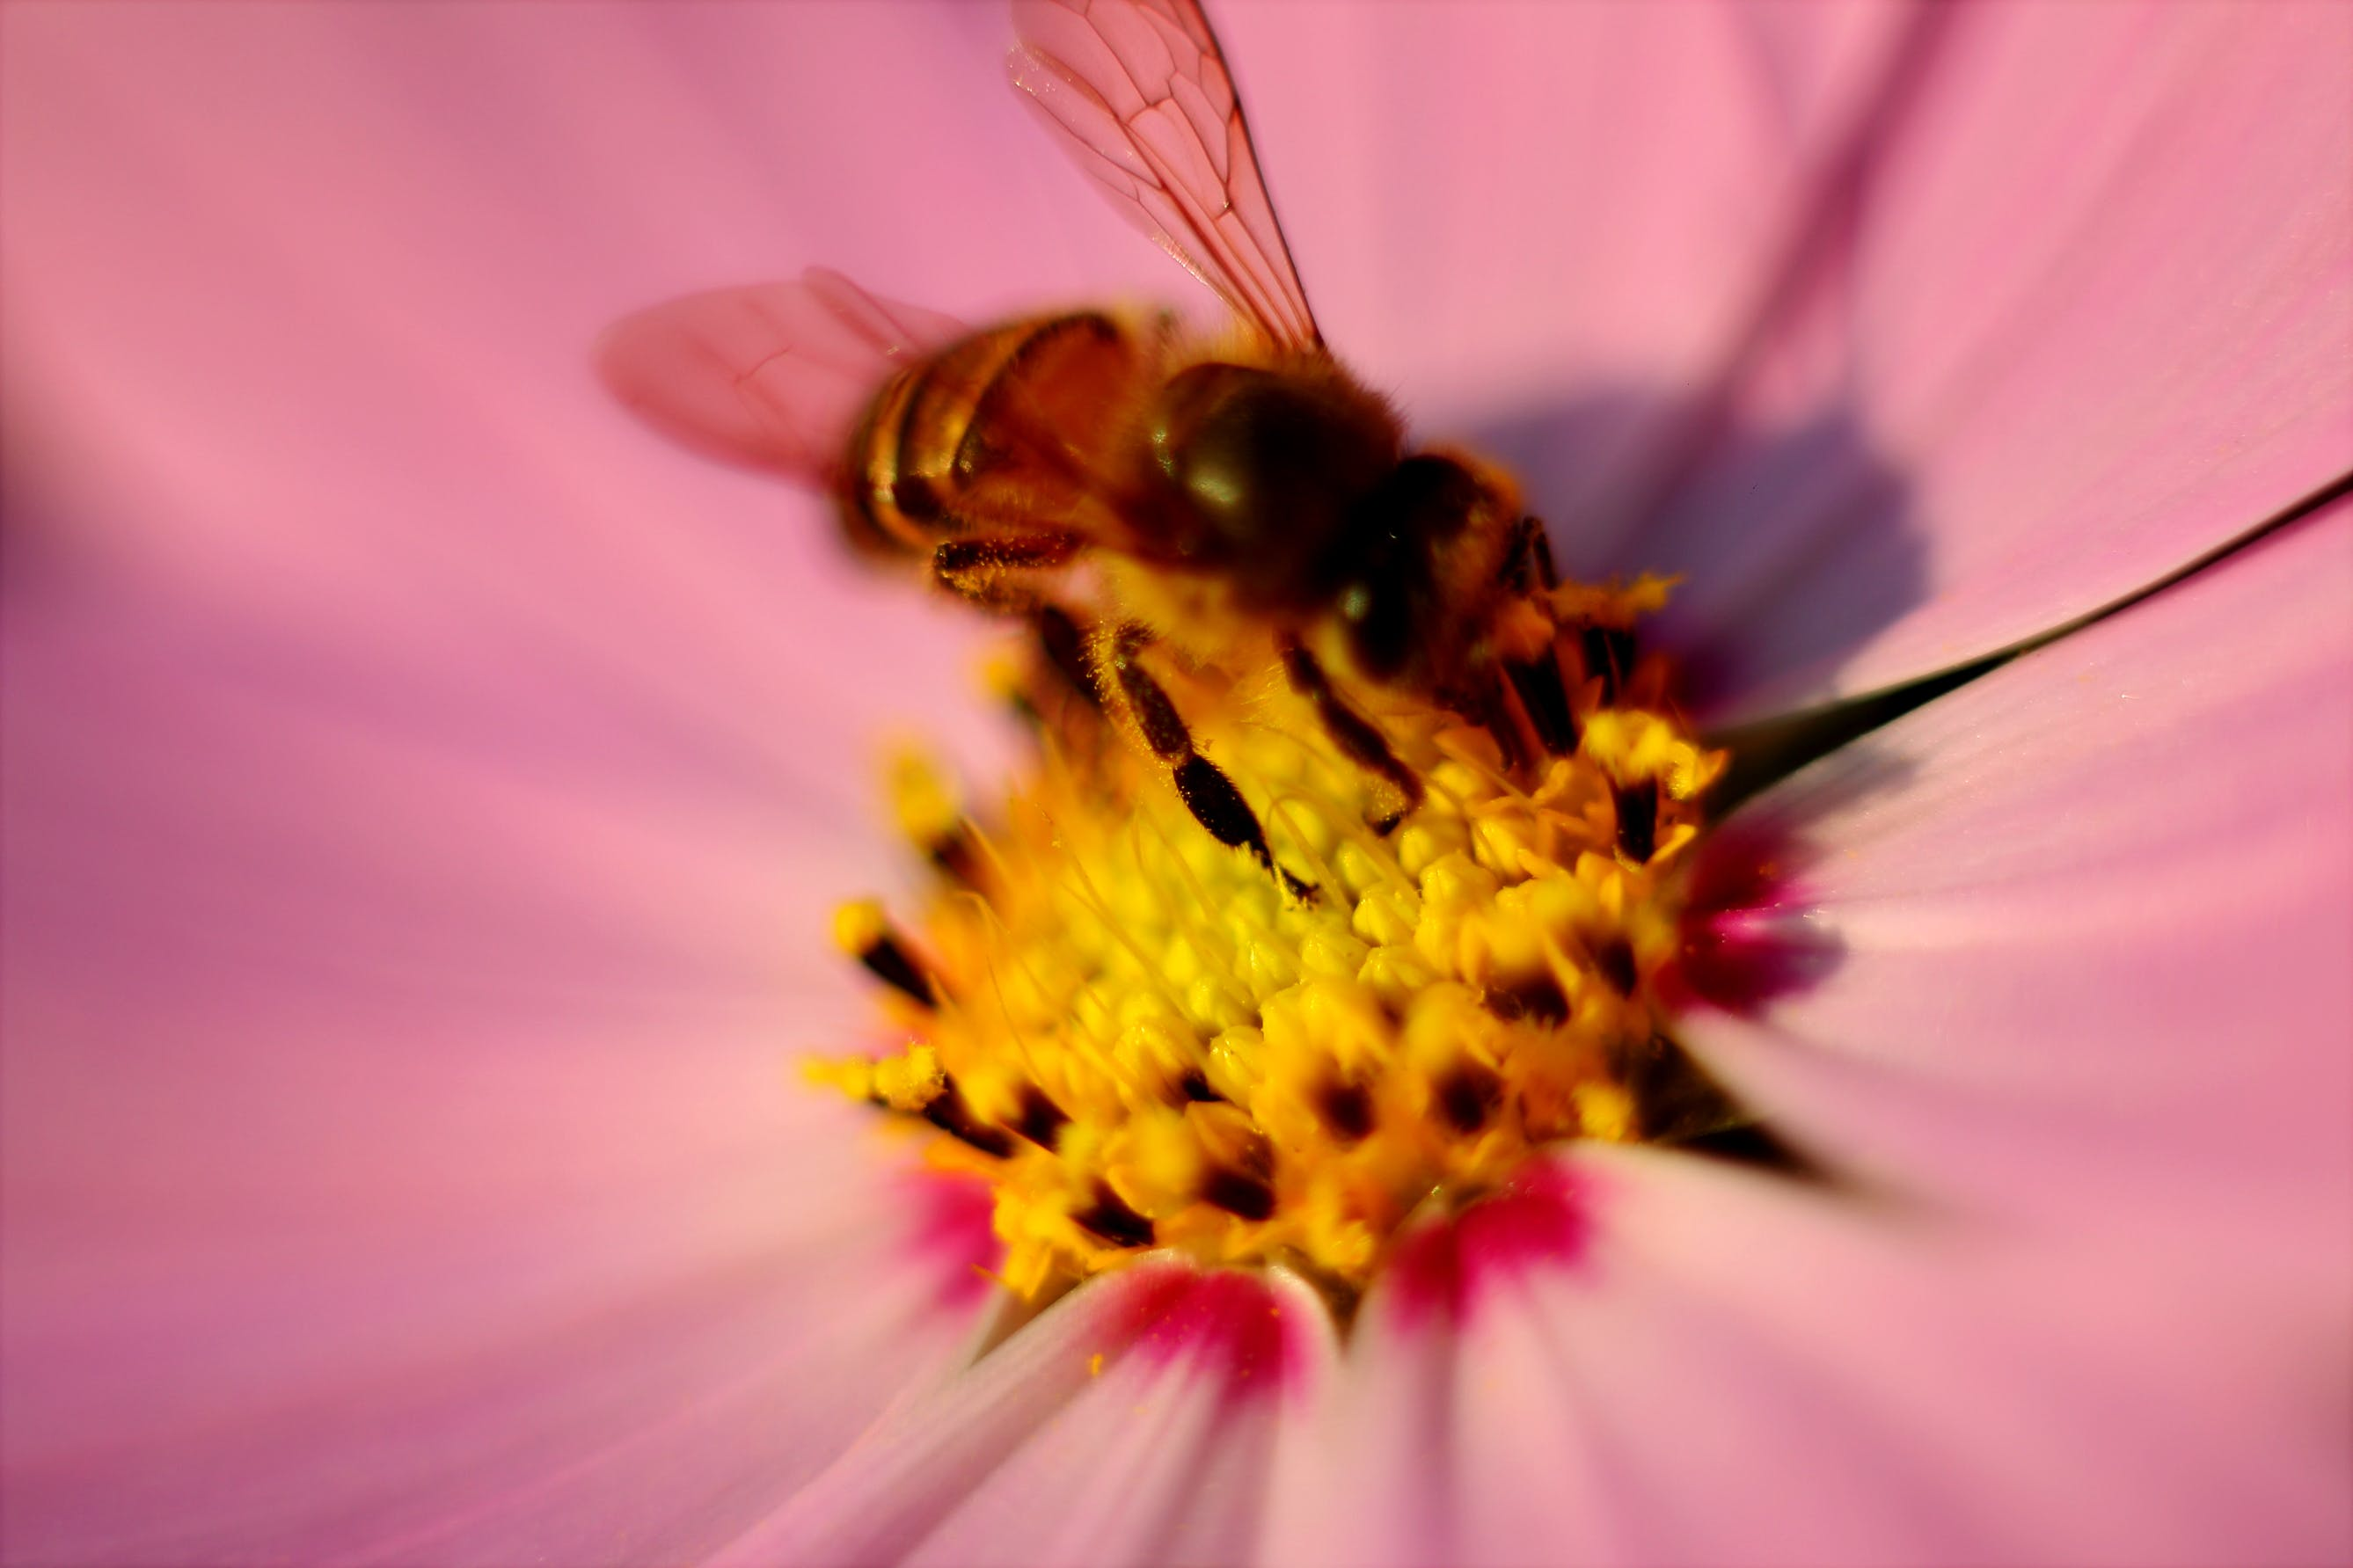 Tilt Photography of Brown Honey Bee on Pink Petaled Flower Pollen